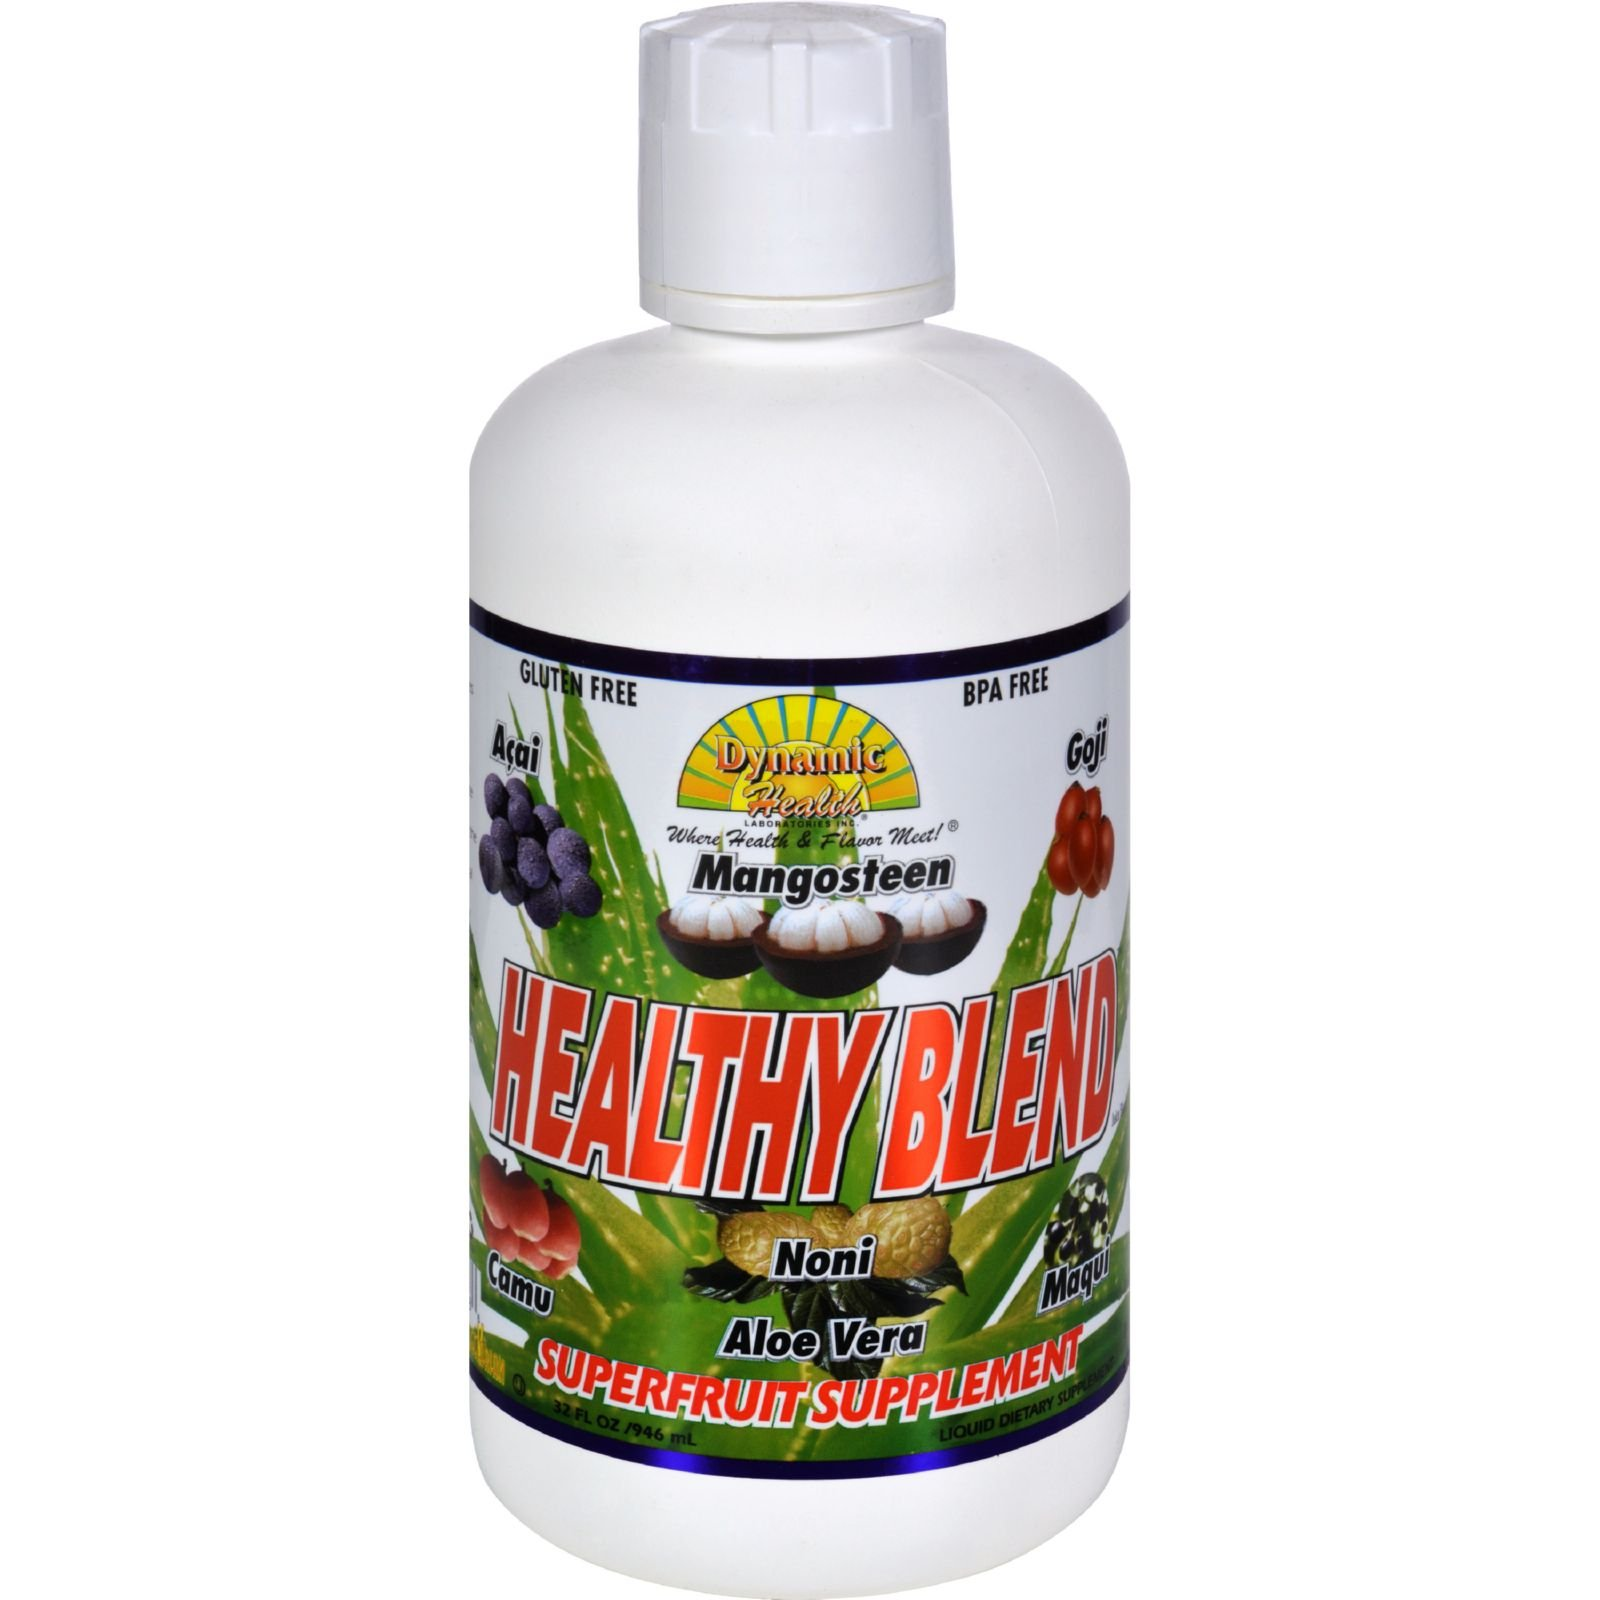 Dynamic Health Healthy Blend Juice - 32 fl oz - promote healthy living -noni superfruit - Gluten free - Antioxidant Supplement - Free Of Artificial colors and flavors